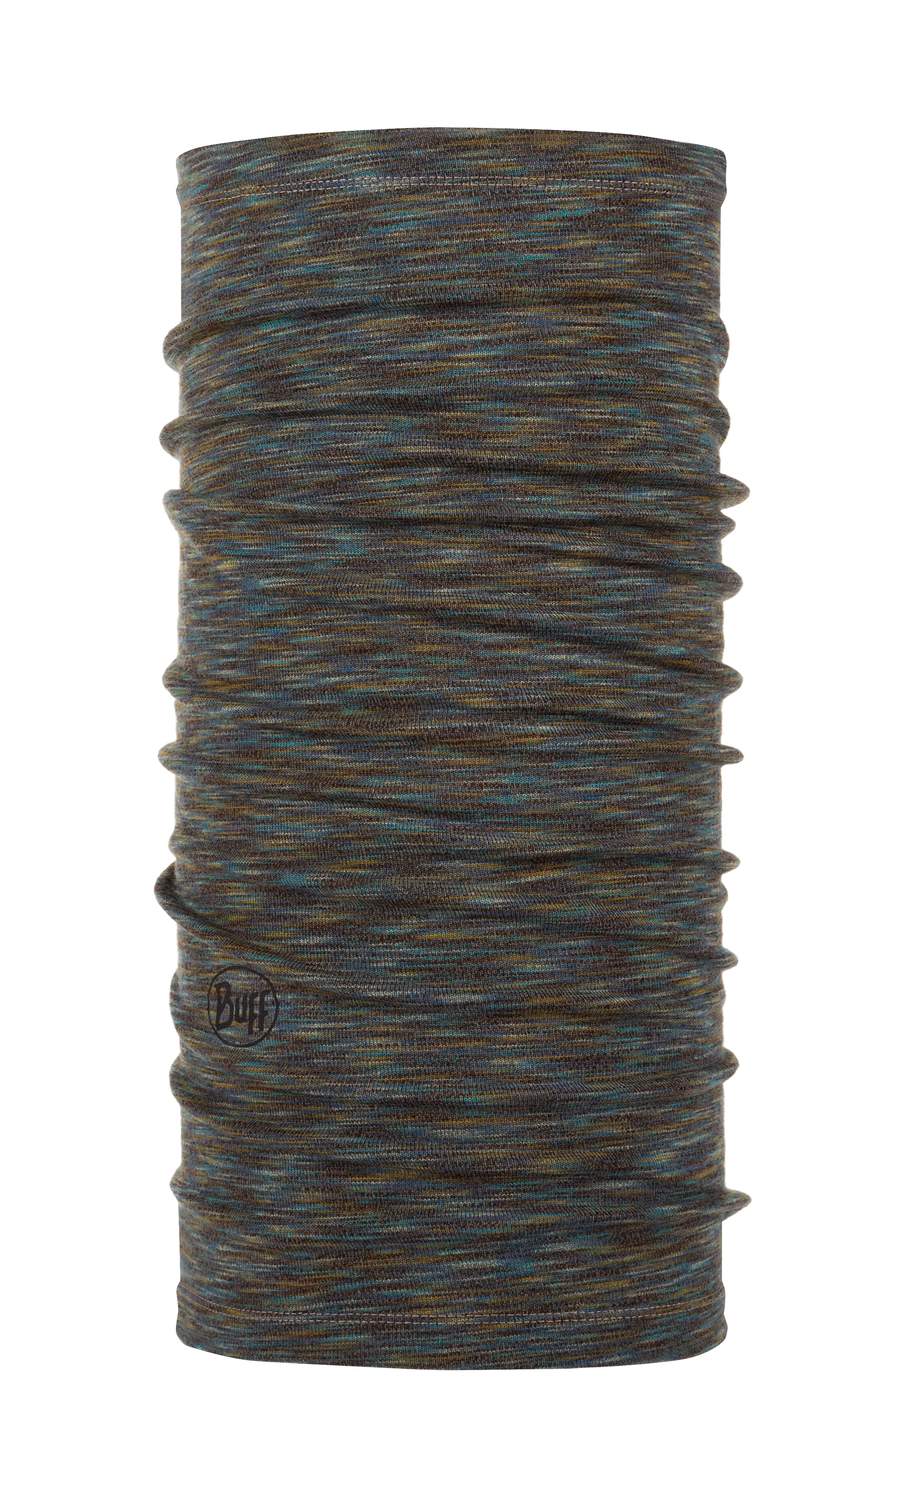 Бандана Buff Midweight Merino Wool Fossil Multi Stripes